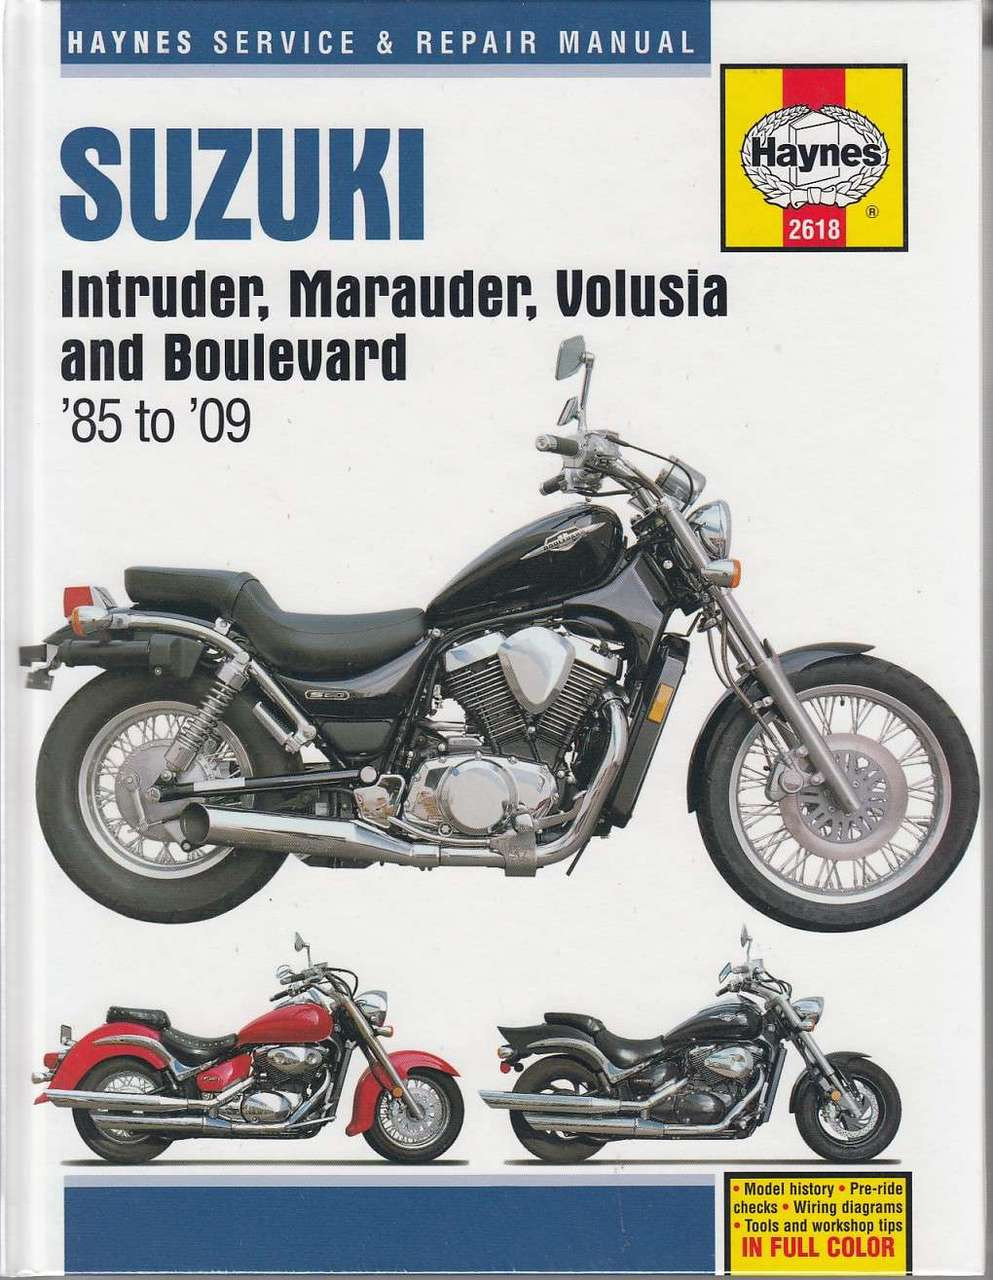 small resolution of suzuki intruder marauder volusia and boulevard 1985 2009 workshop manual